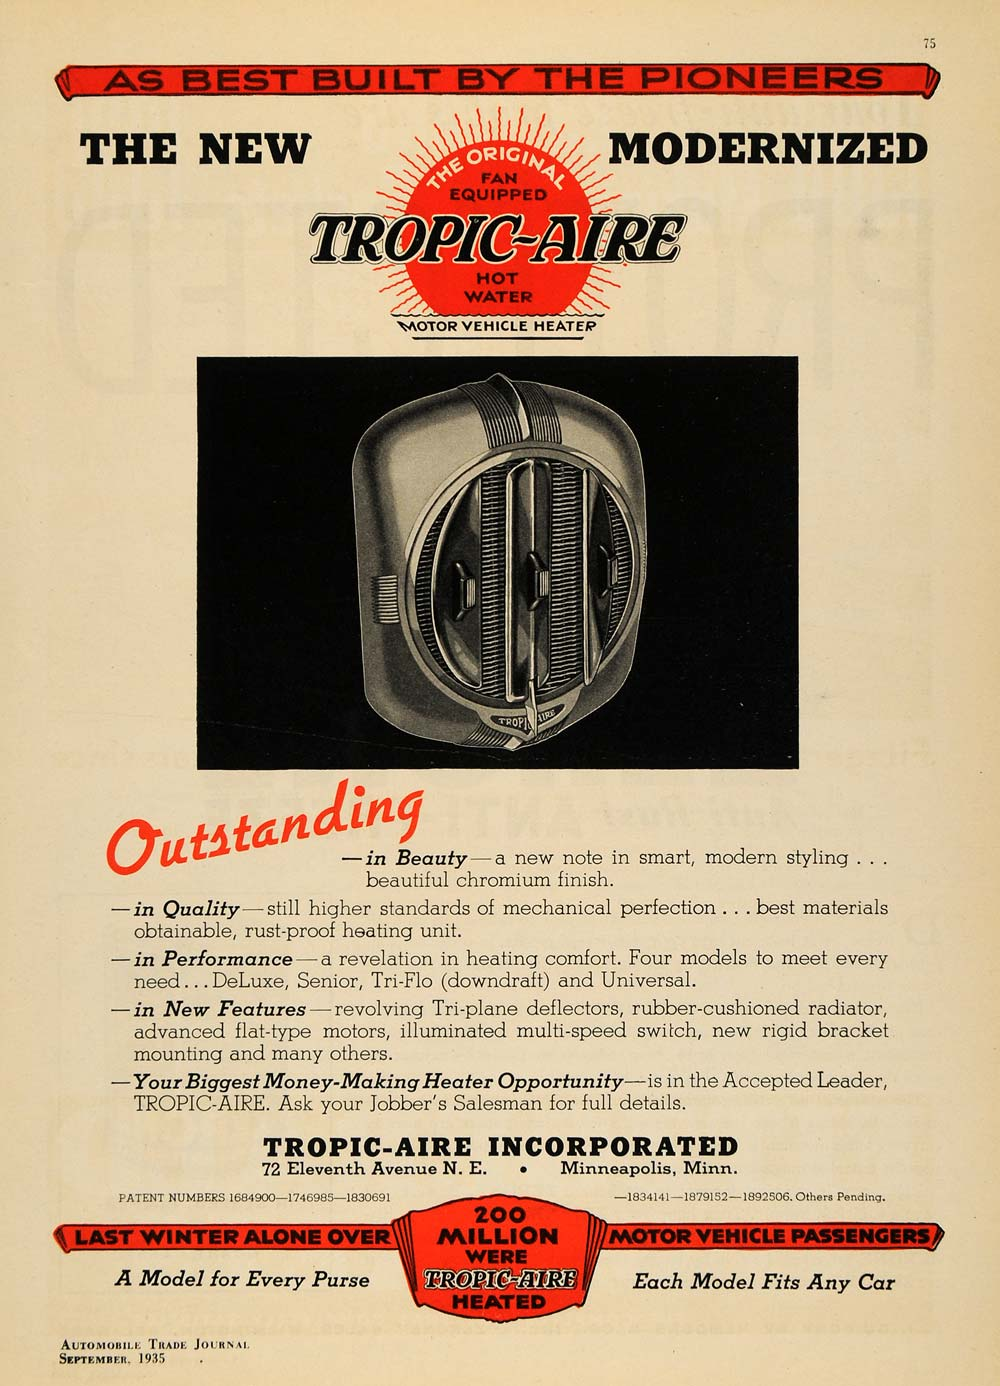 1935 Ad Tropic Aire Fan Hot Water Motor Vehicle Heater - ORIGINAL ATJ2